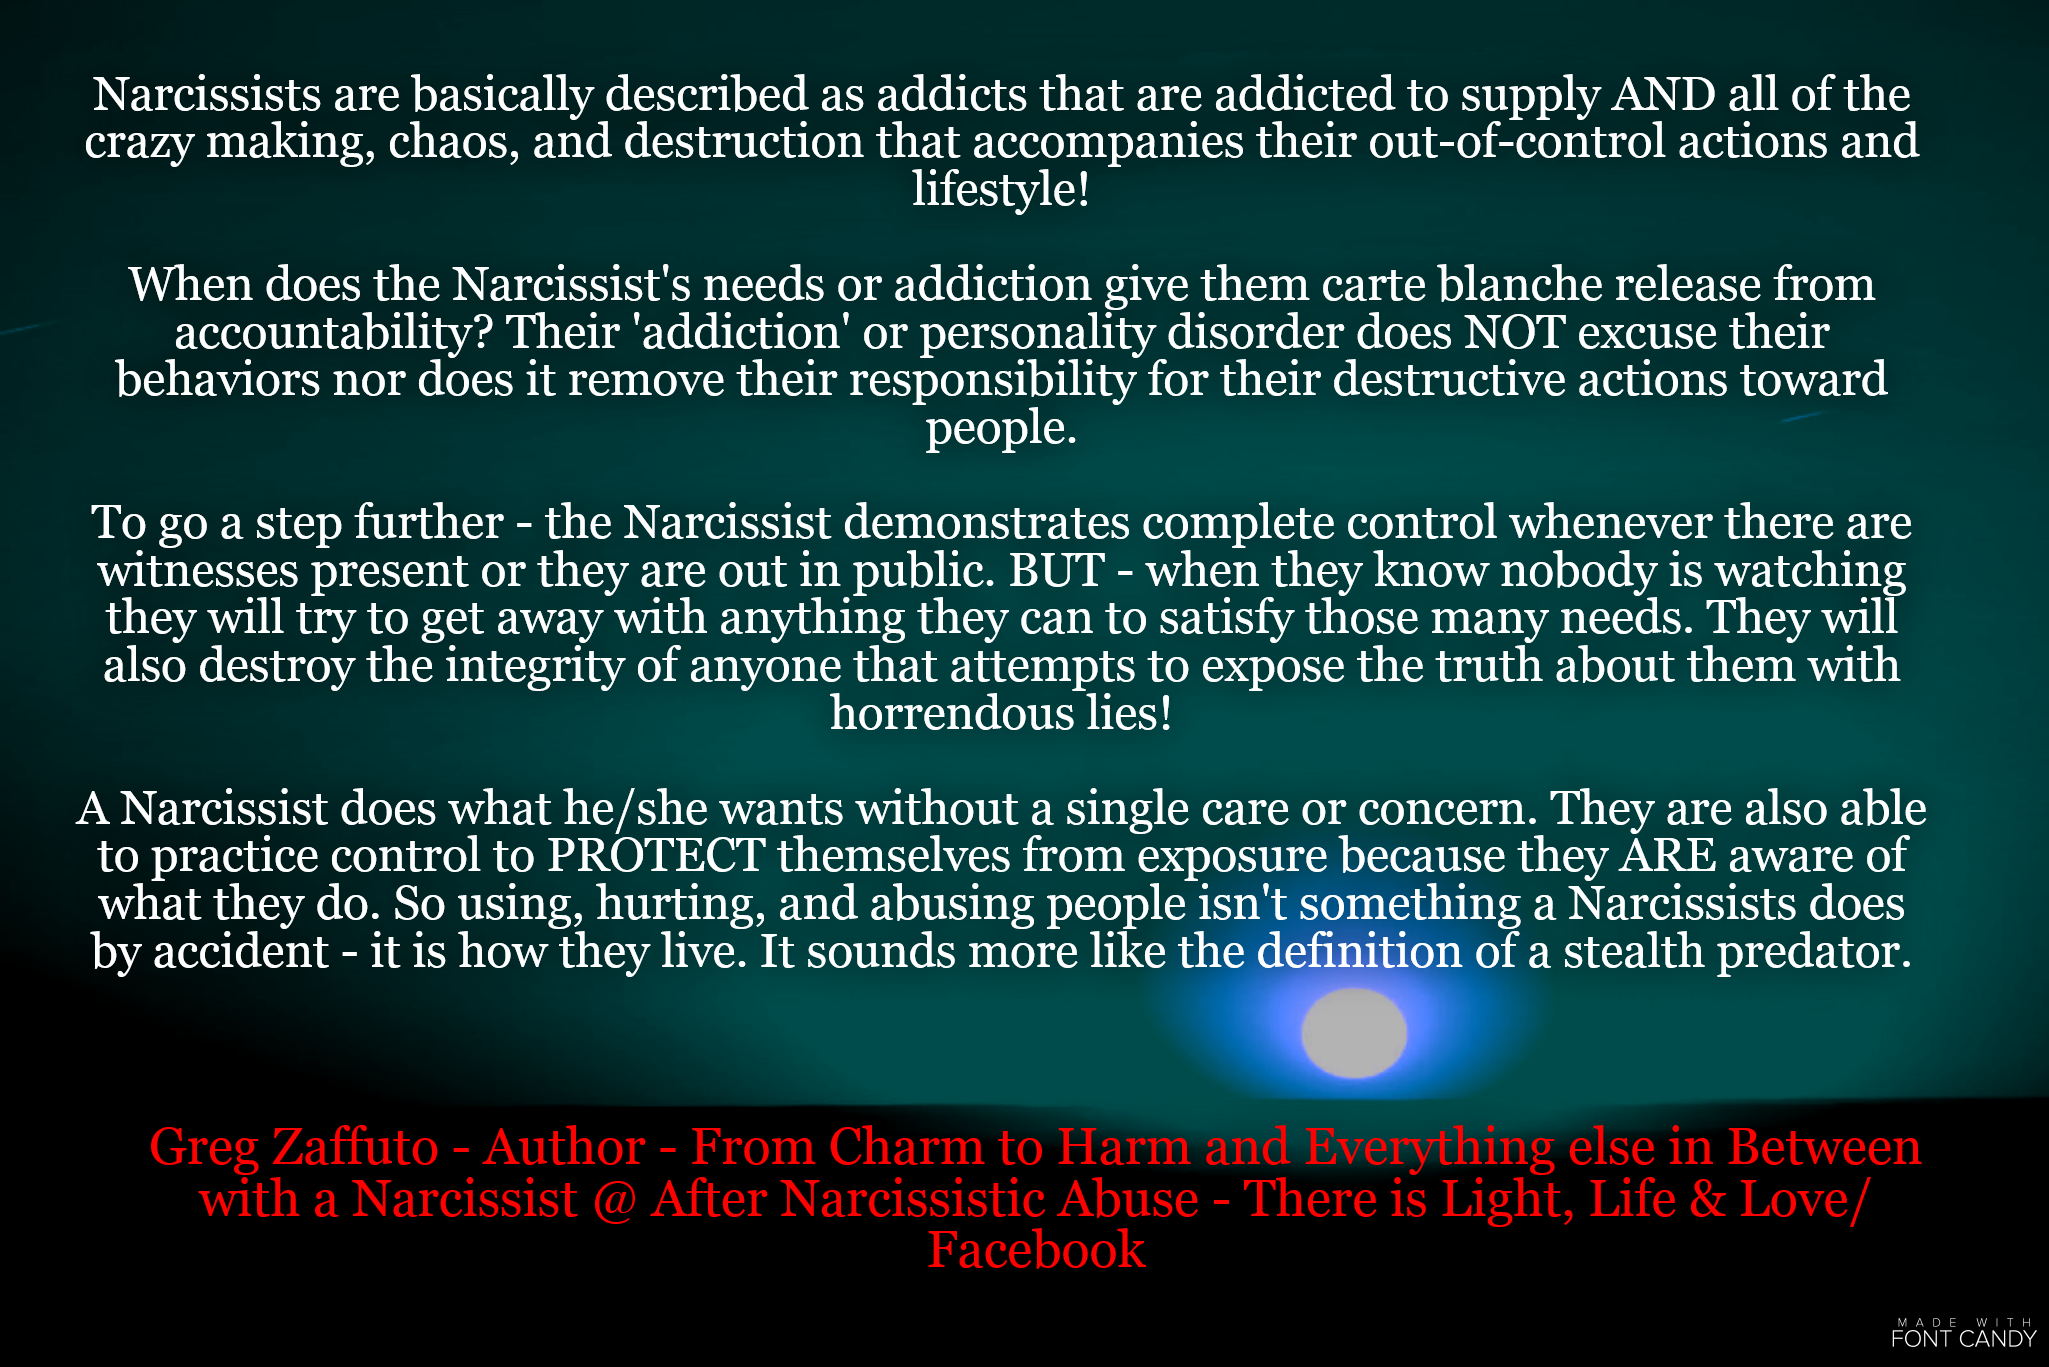 Let's call this what it is ABUSE – and let's call a Narcissist what